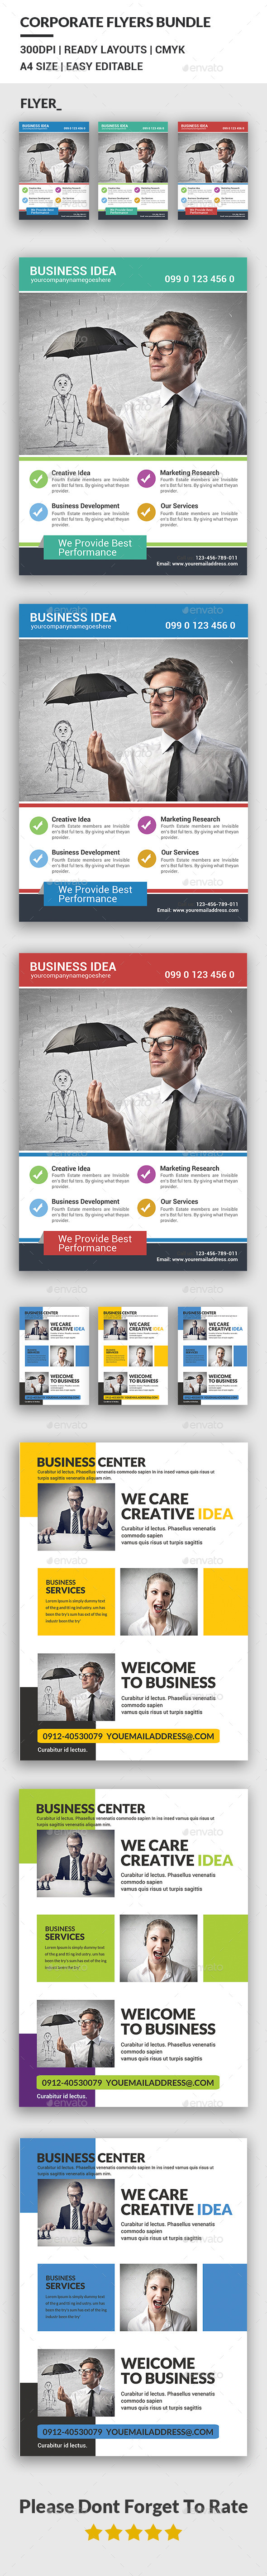 Business Flyers Bundle - Corporate Flyers